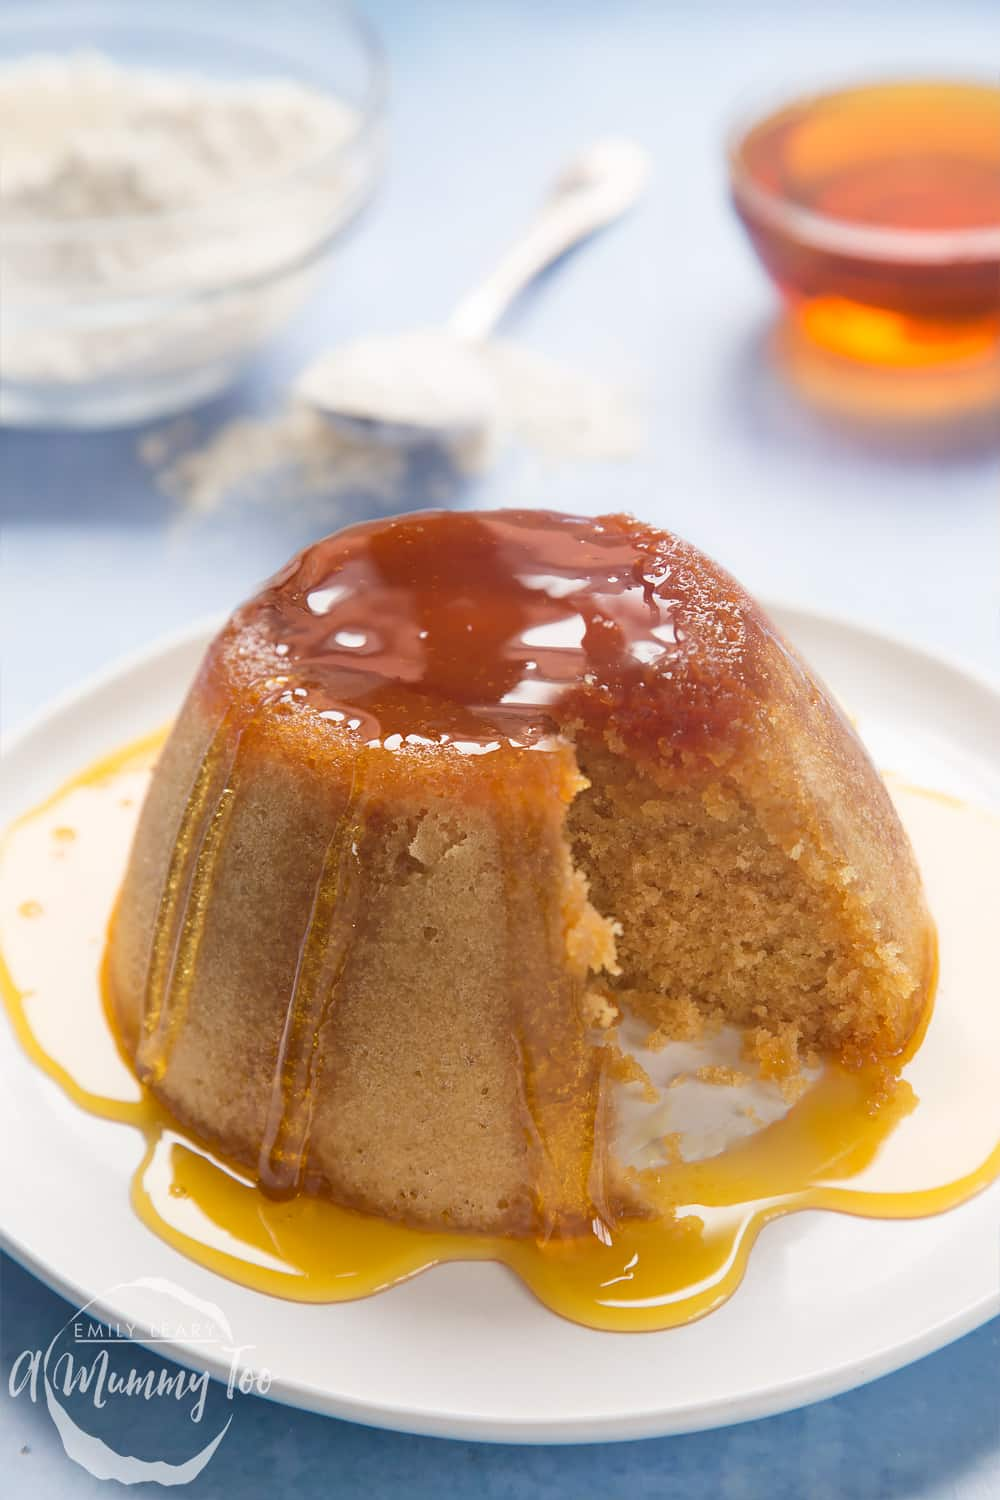 Front angle shot of syrup sponge pudding served in a white plate with honey with a mummy too logo in the lower-left corner